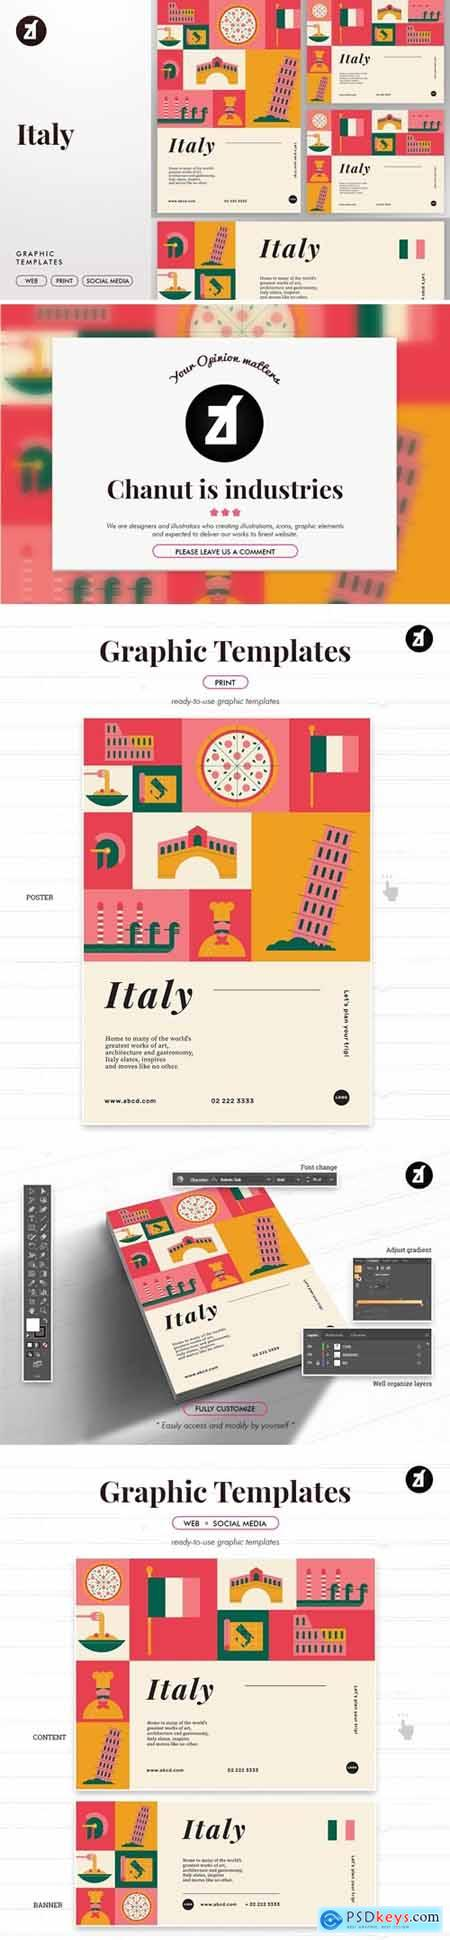 Italy graphic templates